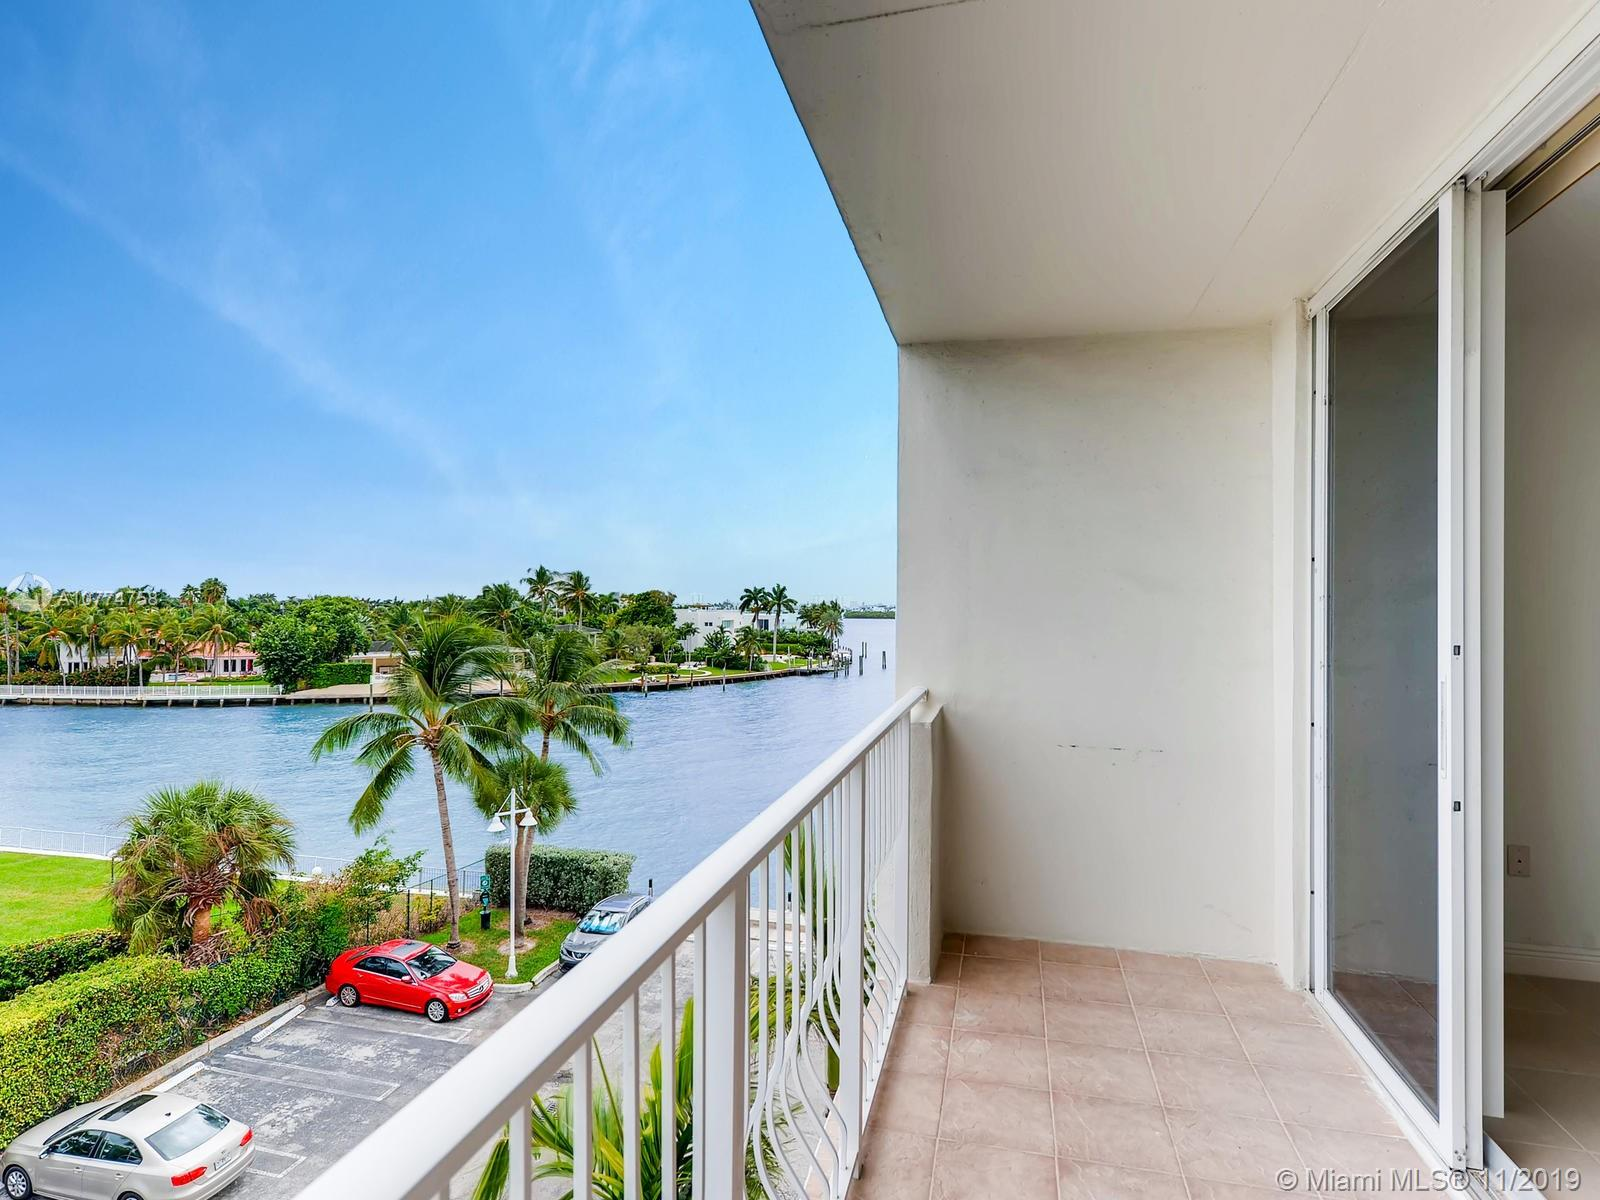 HUGE CORNER UNIT - COMPLETELY REMODELED! EXQUISITE VIEWS WITH PRICELESS SUNSETS OVER THE INTRACOASTAL! THIS UNIT HAS UNDERGONE A TASTEFUL HIGH-END REMODEL INCLUDING IMPACT WINDOWS. 2 VERY LARGE BEDROOMS - SPLIT BEDROOM PLAN. WASHER & DRYER INSIDE UNIT.  2 DEEDED PARKING SPOTS - ONE IS A COVERED SPOT. LARGE AIR CONDITIONED STORAGE ROOM. DOCK SPACE UP TO 30 FEET AVAILABLE FOR LEASE FOR $250 PER MONTH. BUILDING HAS 24HR SECURITY / FABULOUS GYM / PARTY ROOM / BUSINESS CENTER. FABULOUS POOL DIRECTLY ON THE INTRACOSTAL. BBQ AREA. PETS UP TO 50LBS PERMITTED - 2 PETS PERMITTED WITH A TOTAL WEIGHT OF 50LBS. BAY HARBOR ELEMENTARY SCHOOL DISTRICT. BUILDING ITSELF HAS UNDERGONE A MAJOR RENOVATION. LOOKS FABULOUS.  *** OWNER WOULD CONSIDER OWNER FINANCING WITH A SUBSTANTIAL DOWNPAYMENT.